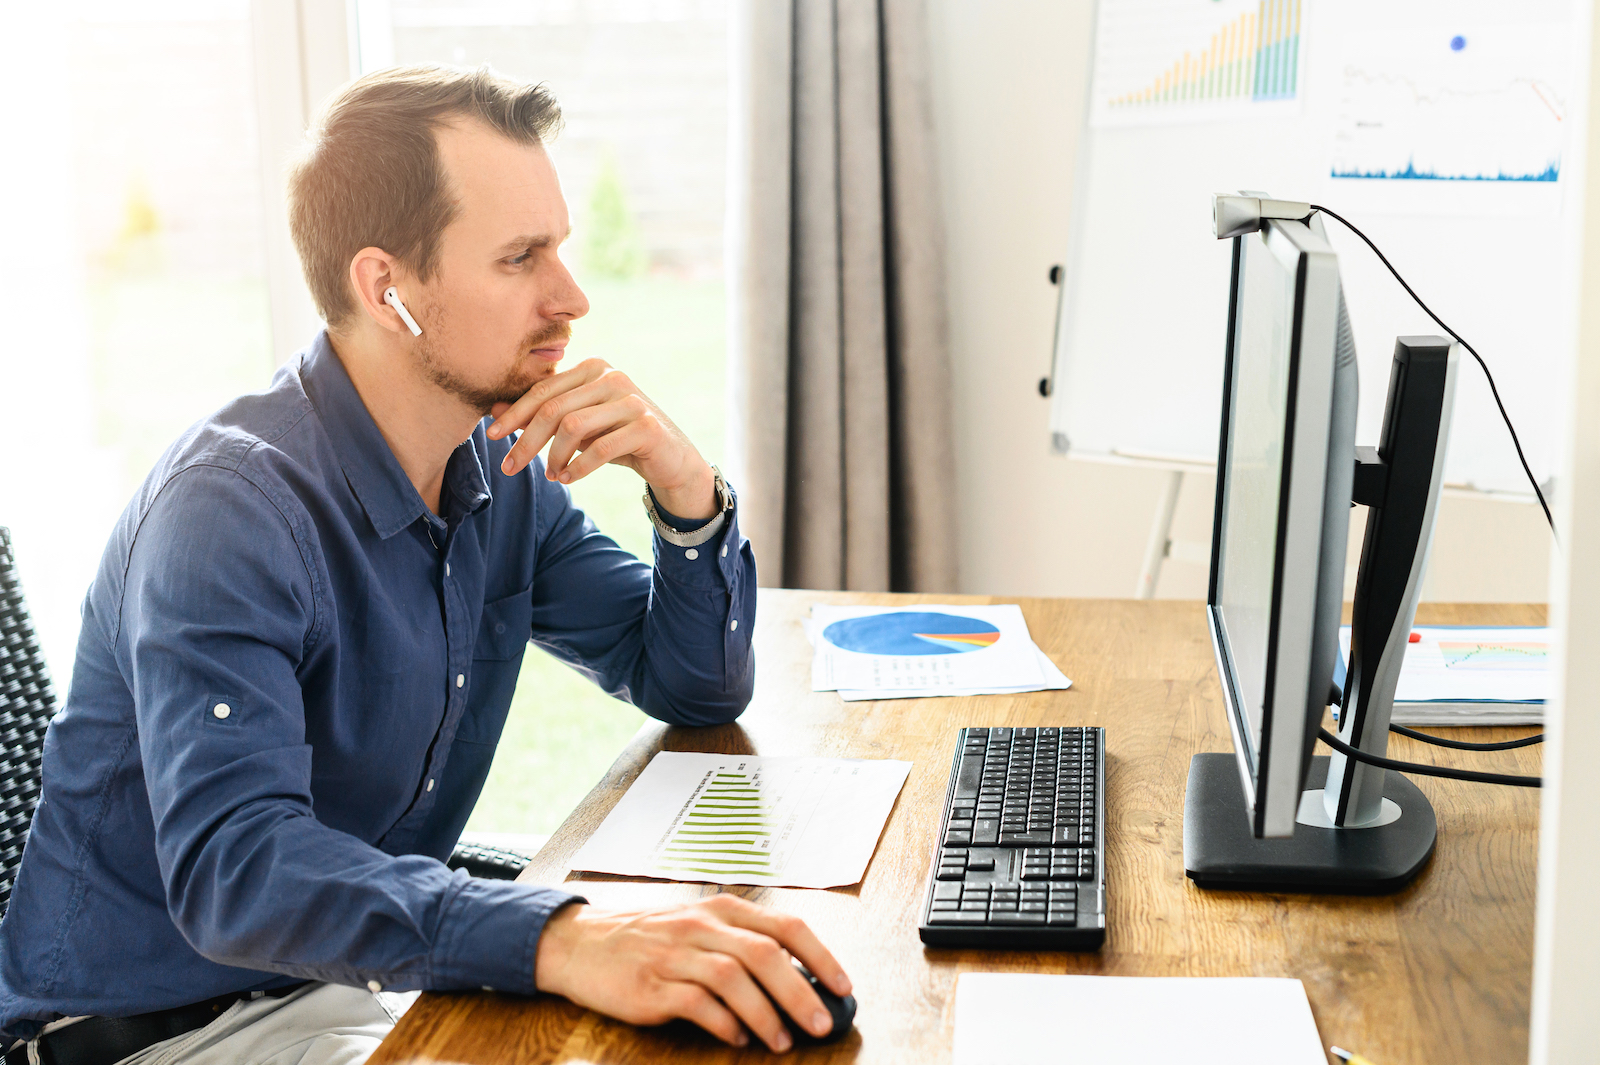 Work at office. A young man is using pc for office work, she sits at the table and concentrated looks to the screen, flip chart on background